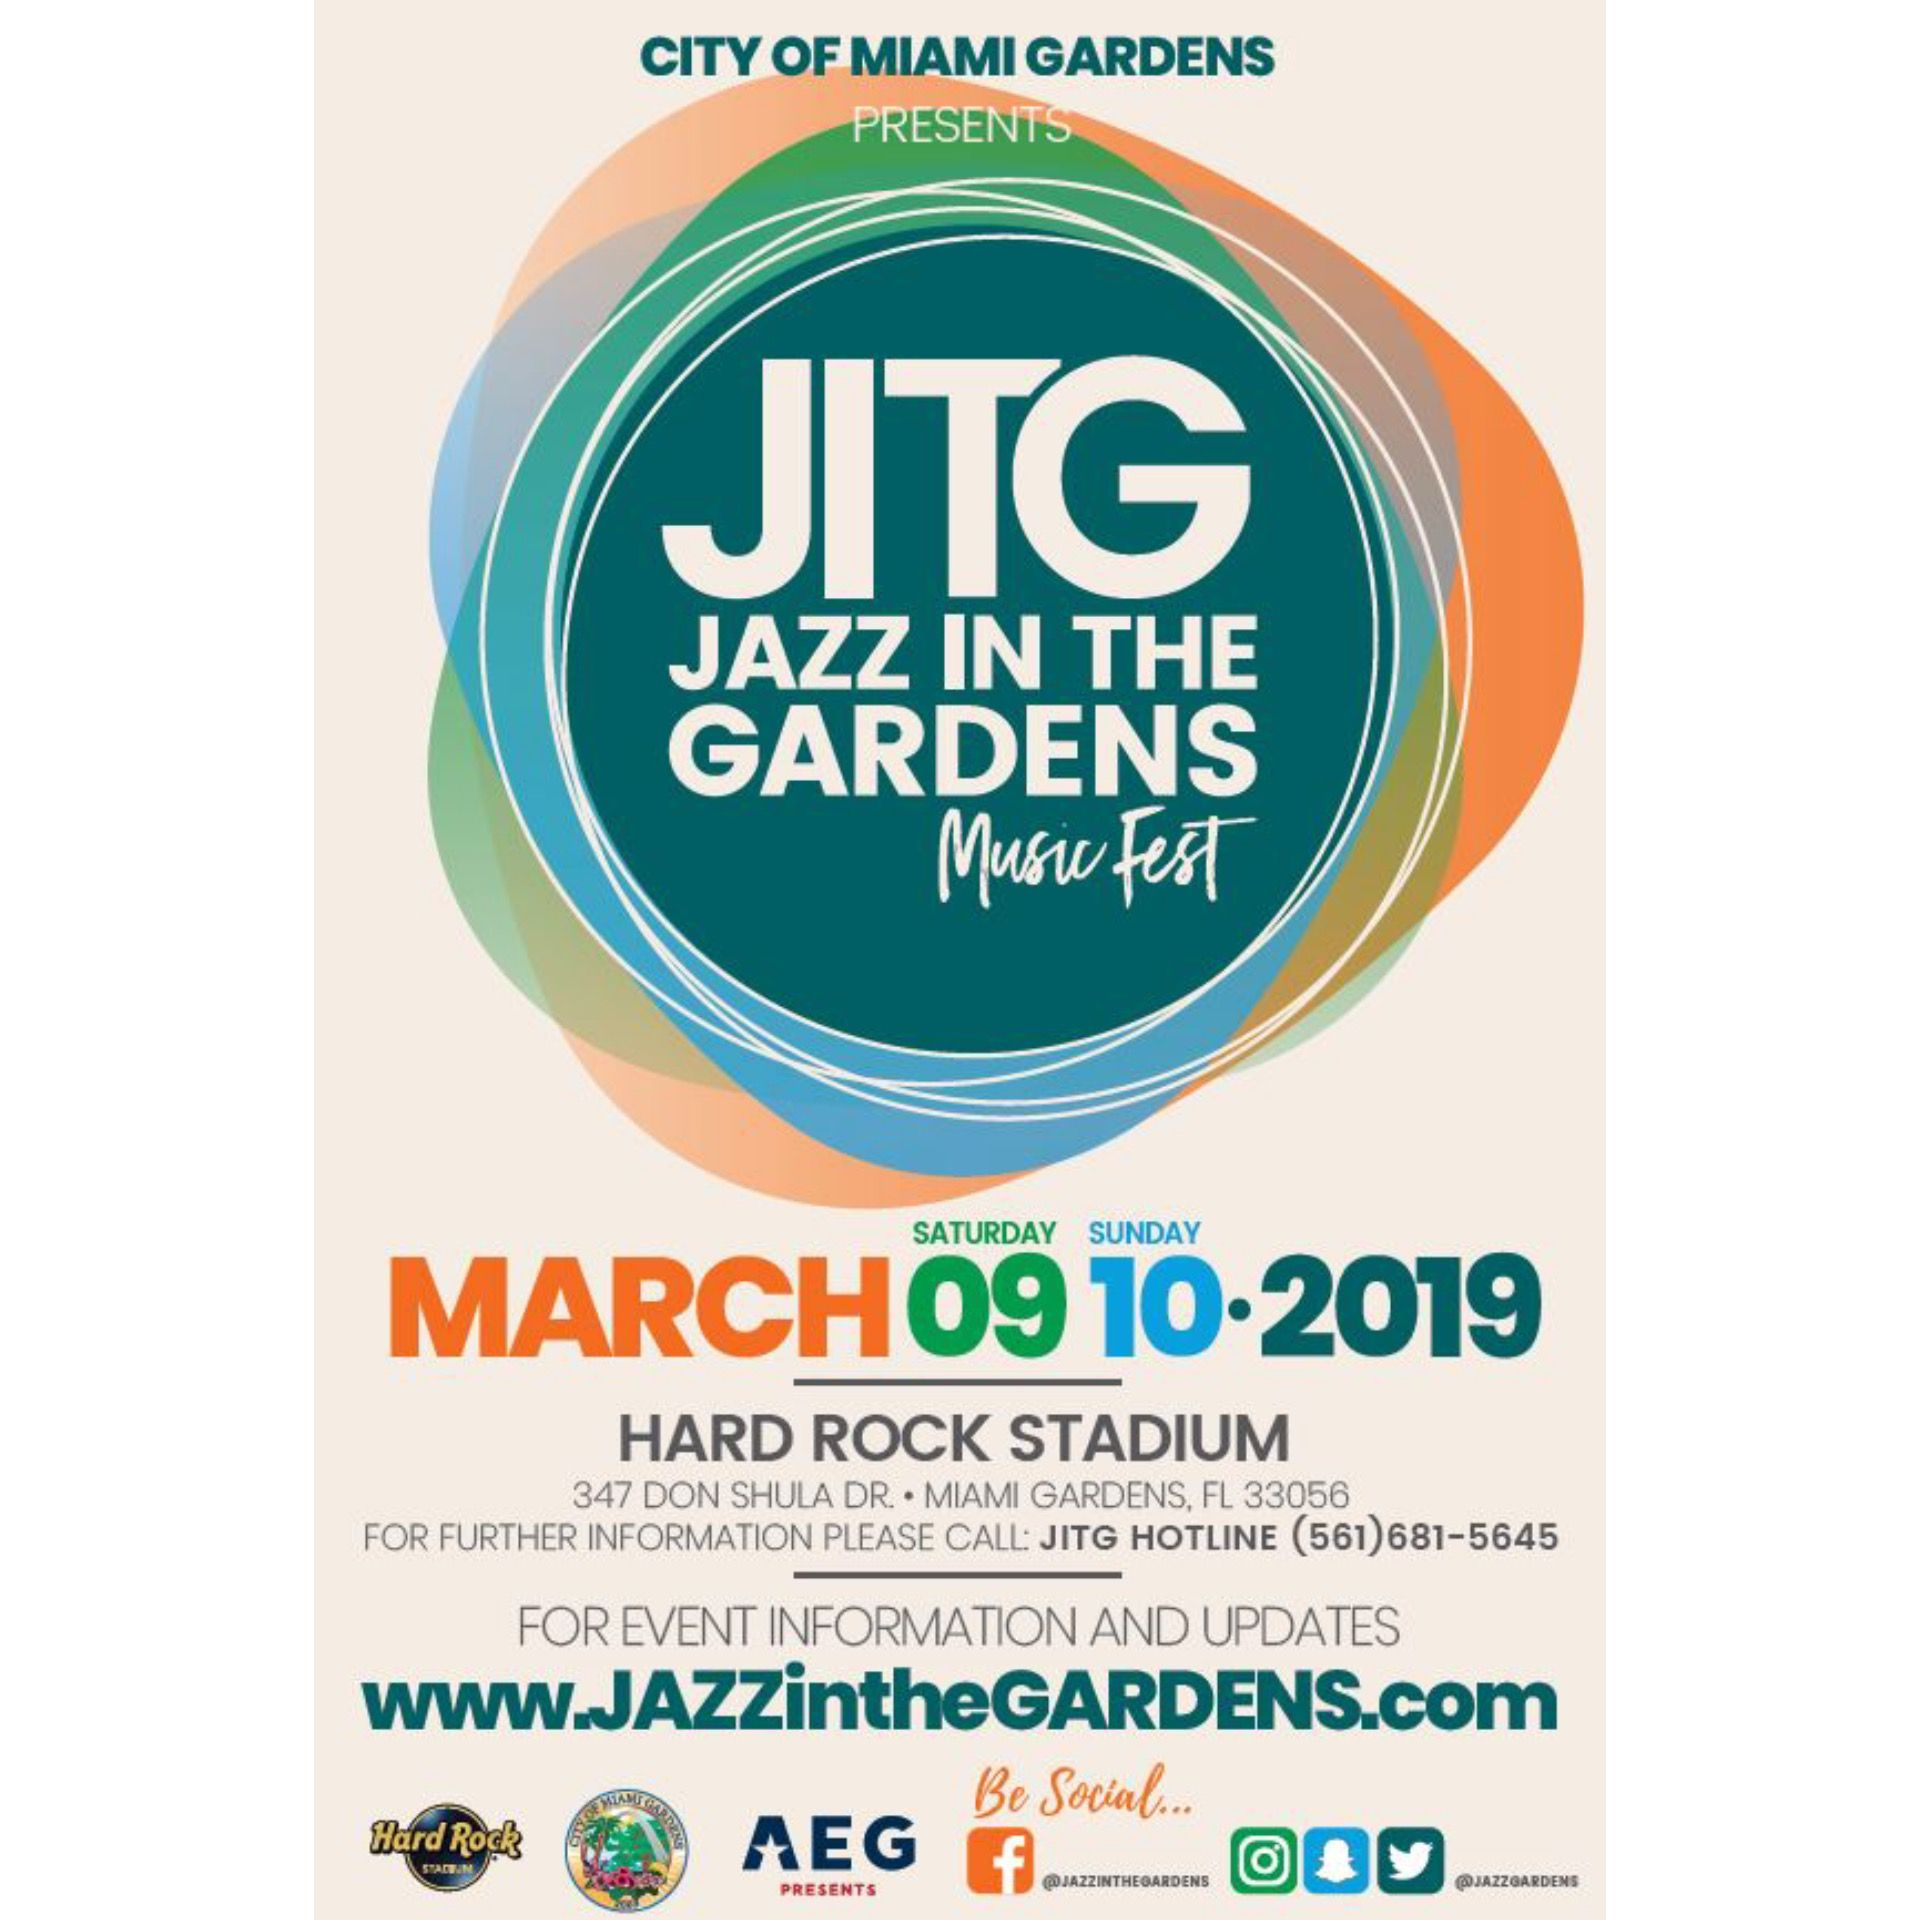 3c27cfd8bf0206b89449bb3d6f591fba - Jazz In The Gardens 2019 Schedule